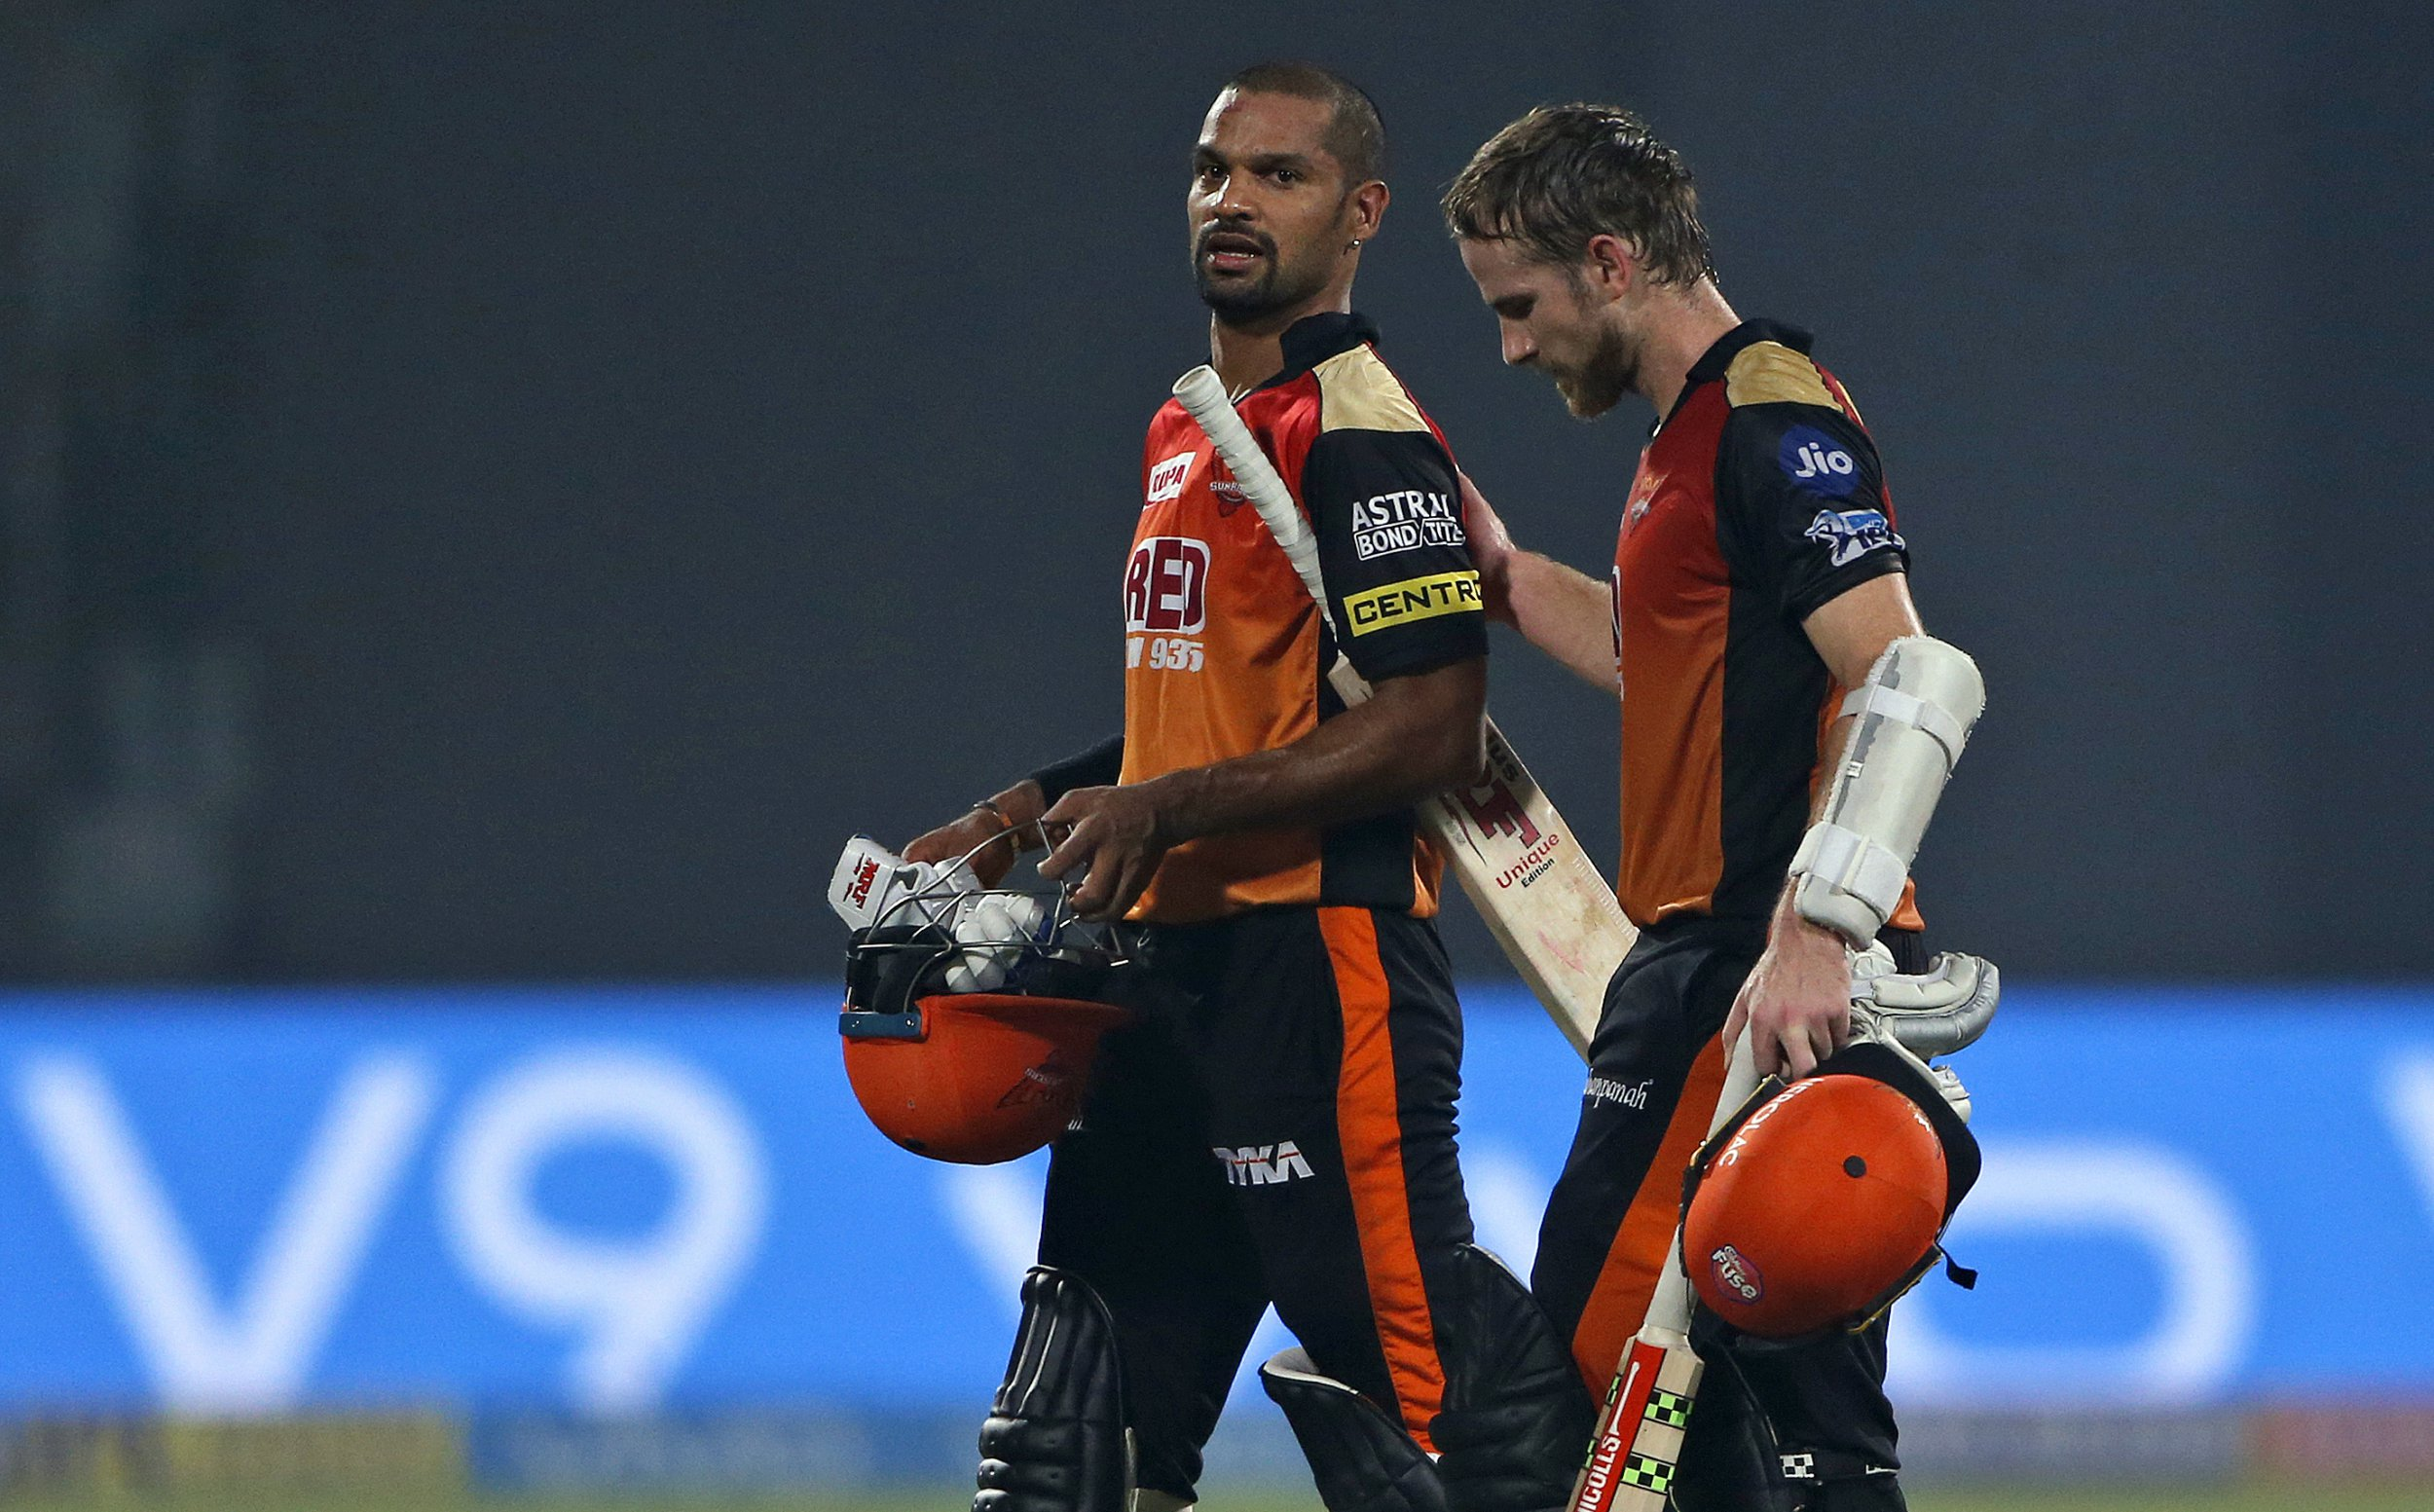 Sunrisers Hyderabad v Kolkata Knight Riders betting preview: IPL leaders risk imploding on eve of play-offs